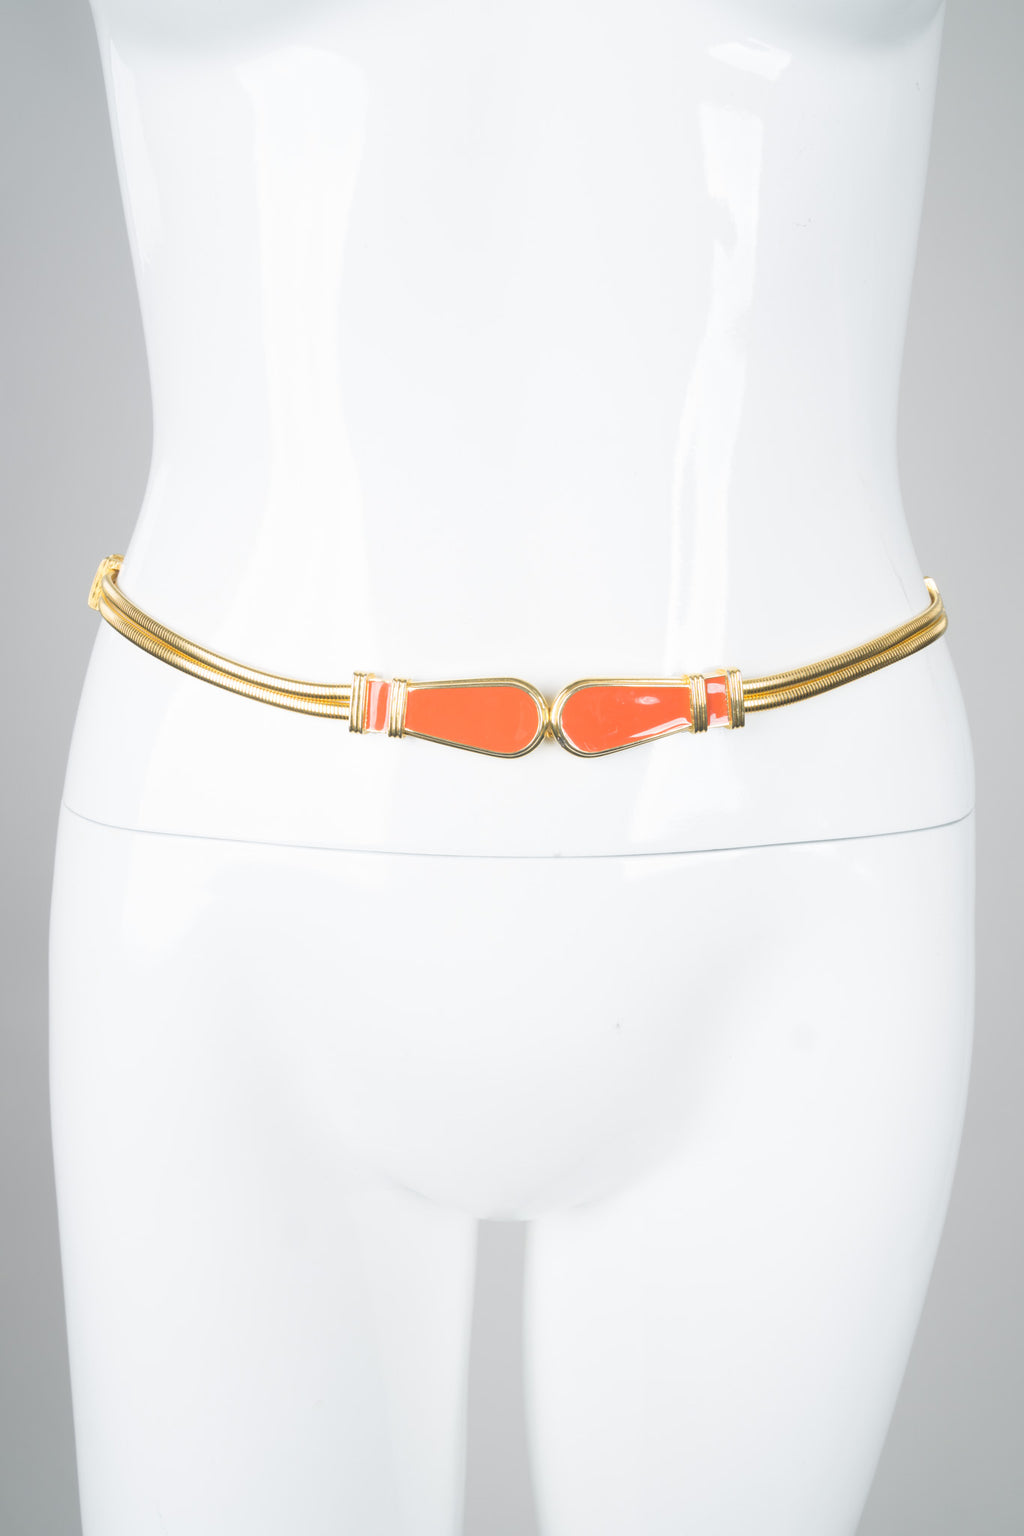 St. John Enamel Stretch Expansion Skinny Belt